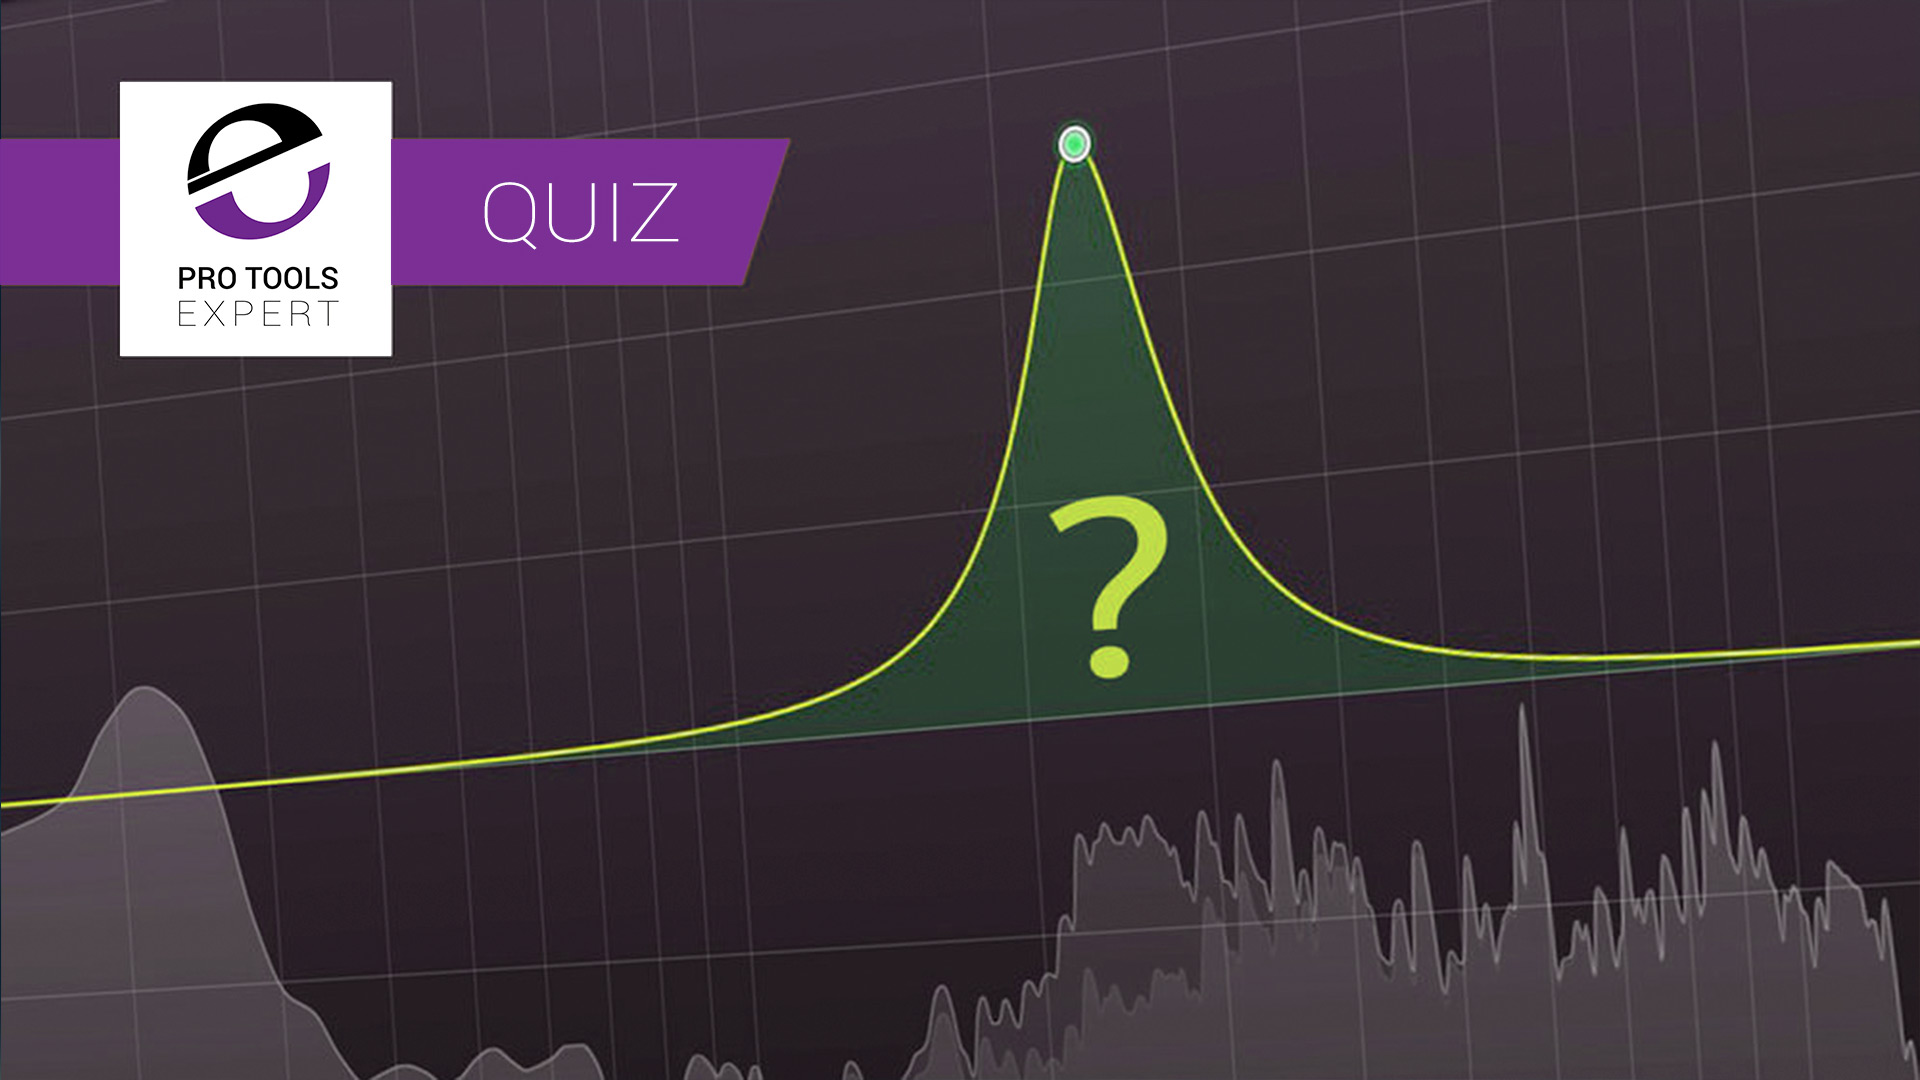 do-you-have-golden-ears-frequency-eq-test-quiz-pro-tools-expert.jpg